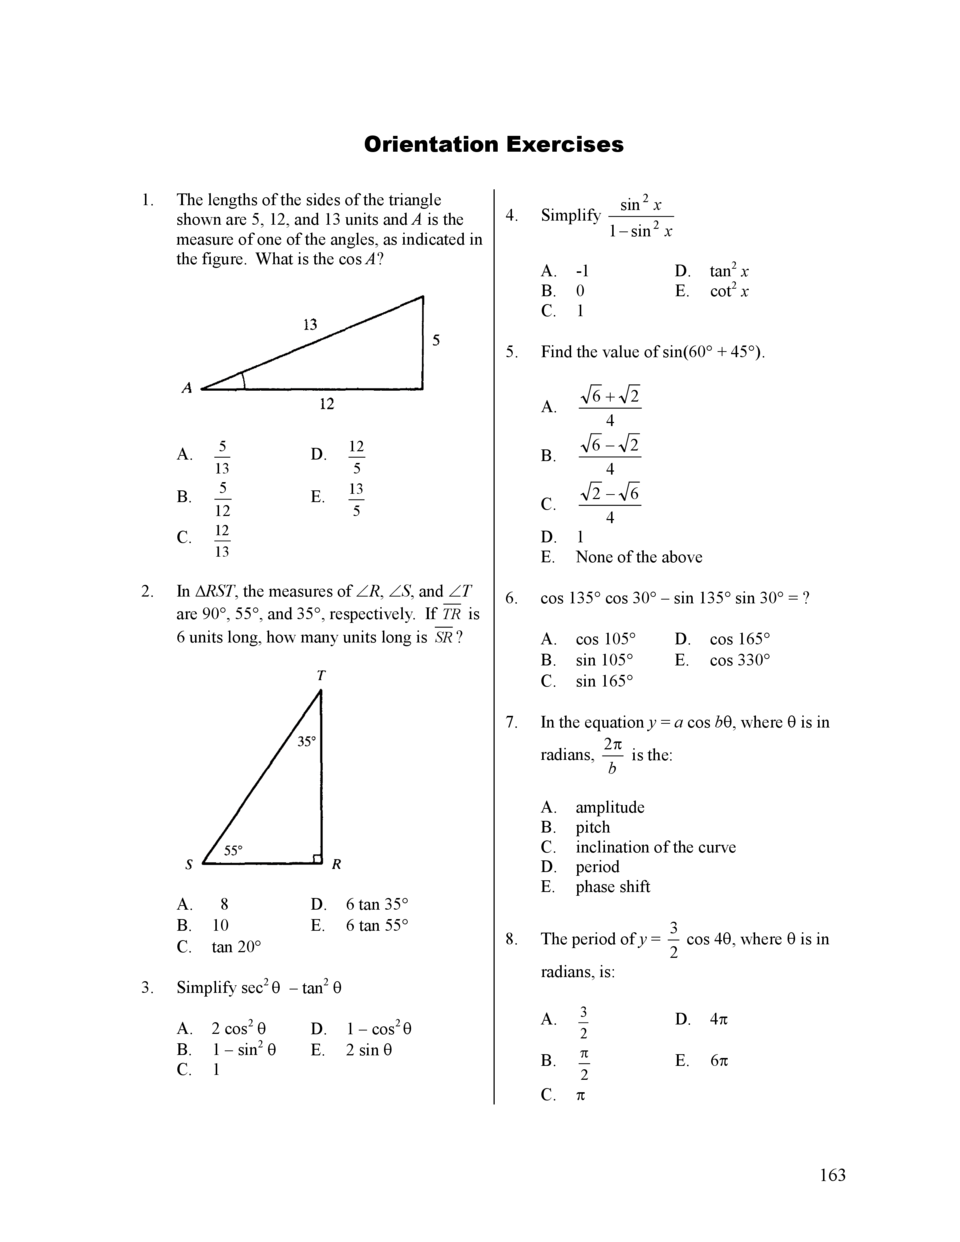 Orientation Exercises 1.  The lengths of the sides of the triangle shown are 5, 12, and 13 units and A is the measure of o...